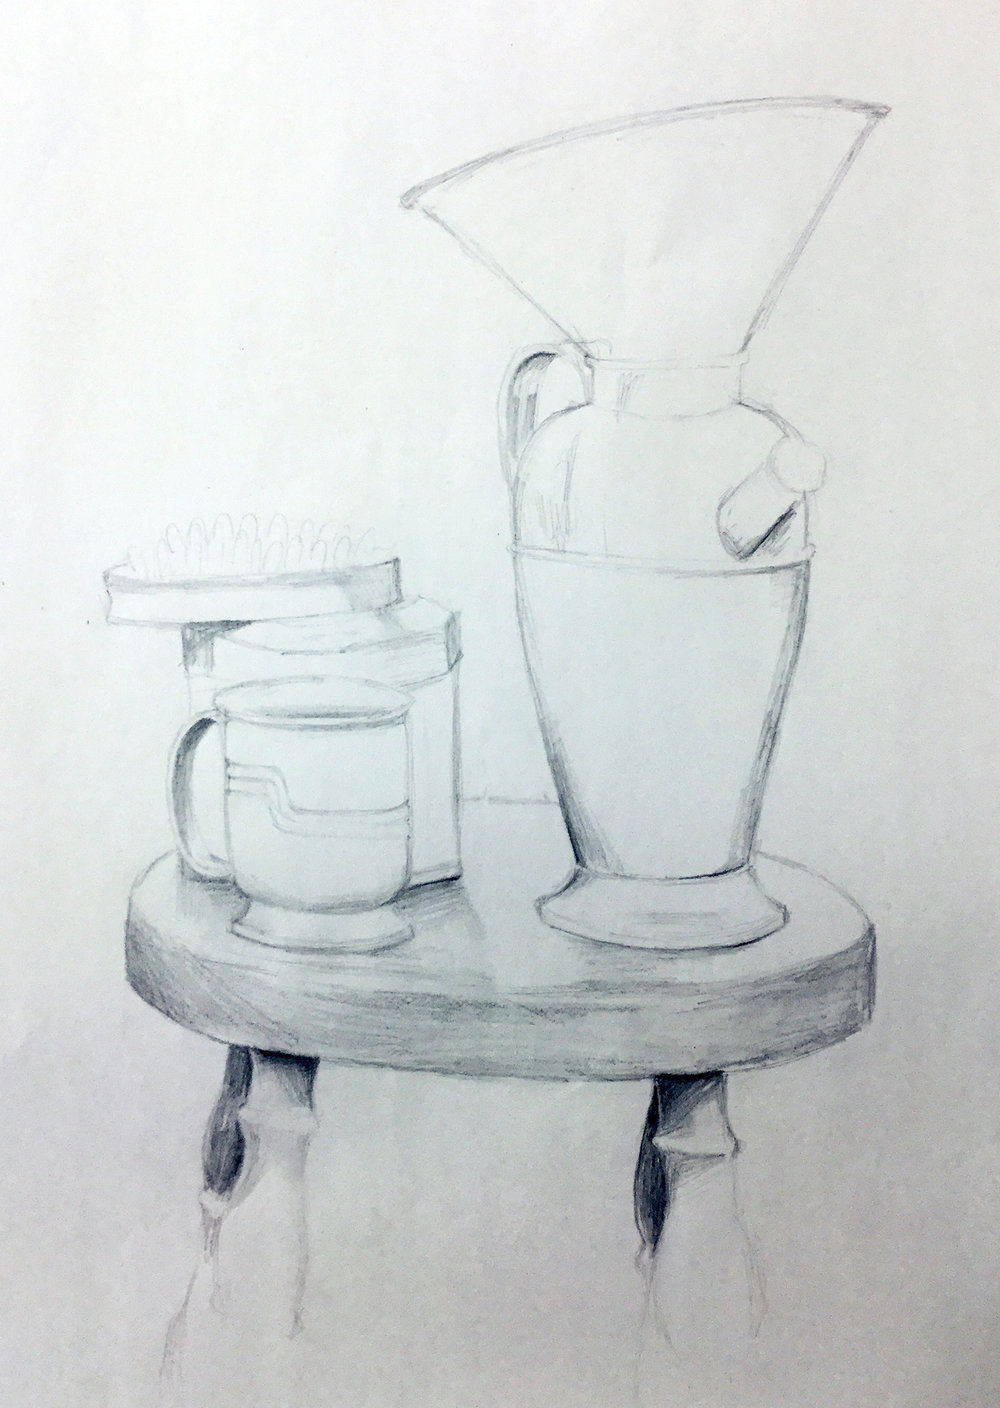 COMMUNITY EDUCATION TEEN PORTFOLIO DEVELOPMENT- Munson Williams and Proctor Arts Institute.    Contour Line   Two hour in class study of still life. Students goal is using contour line to define shape of simple objects.  Graphite on Paper